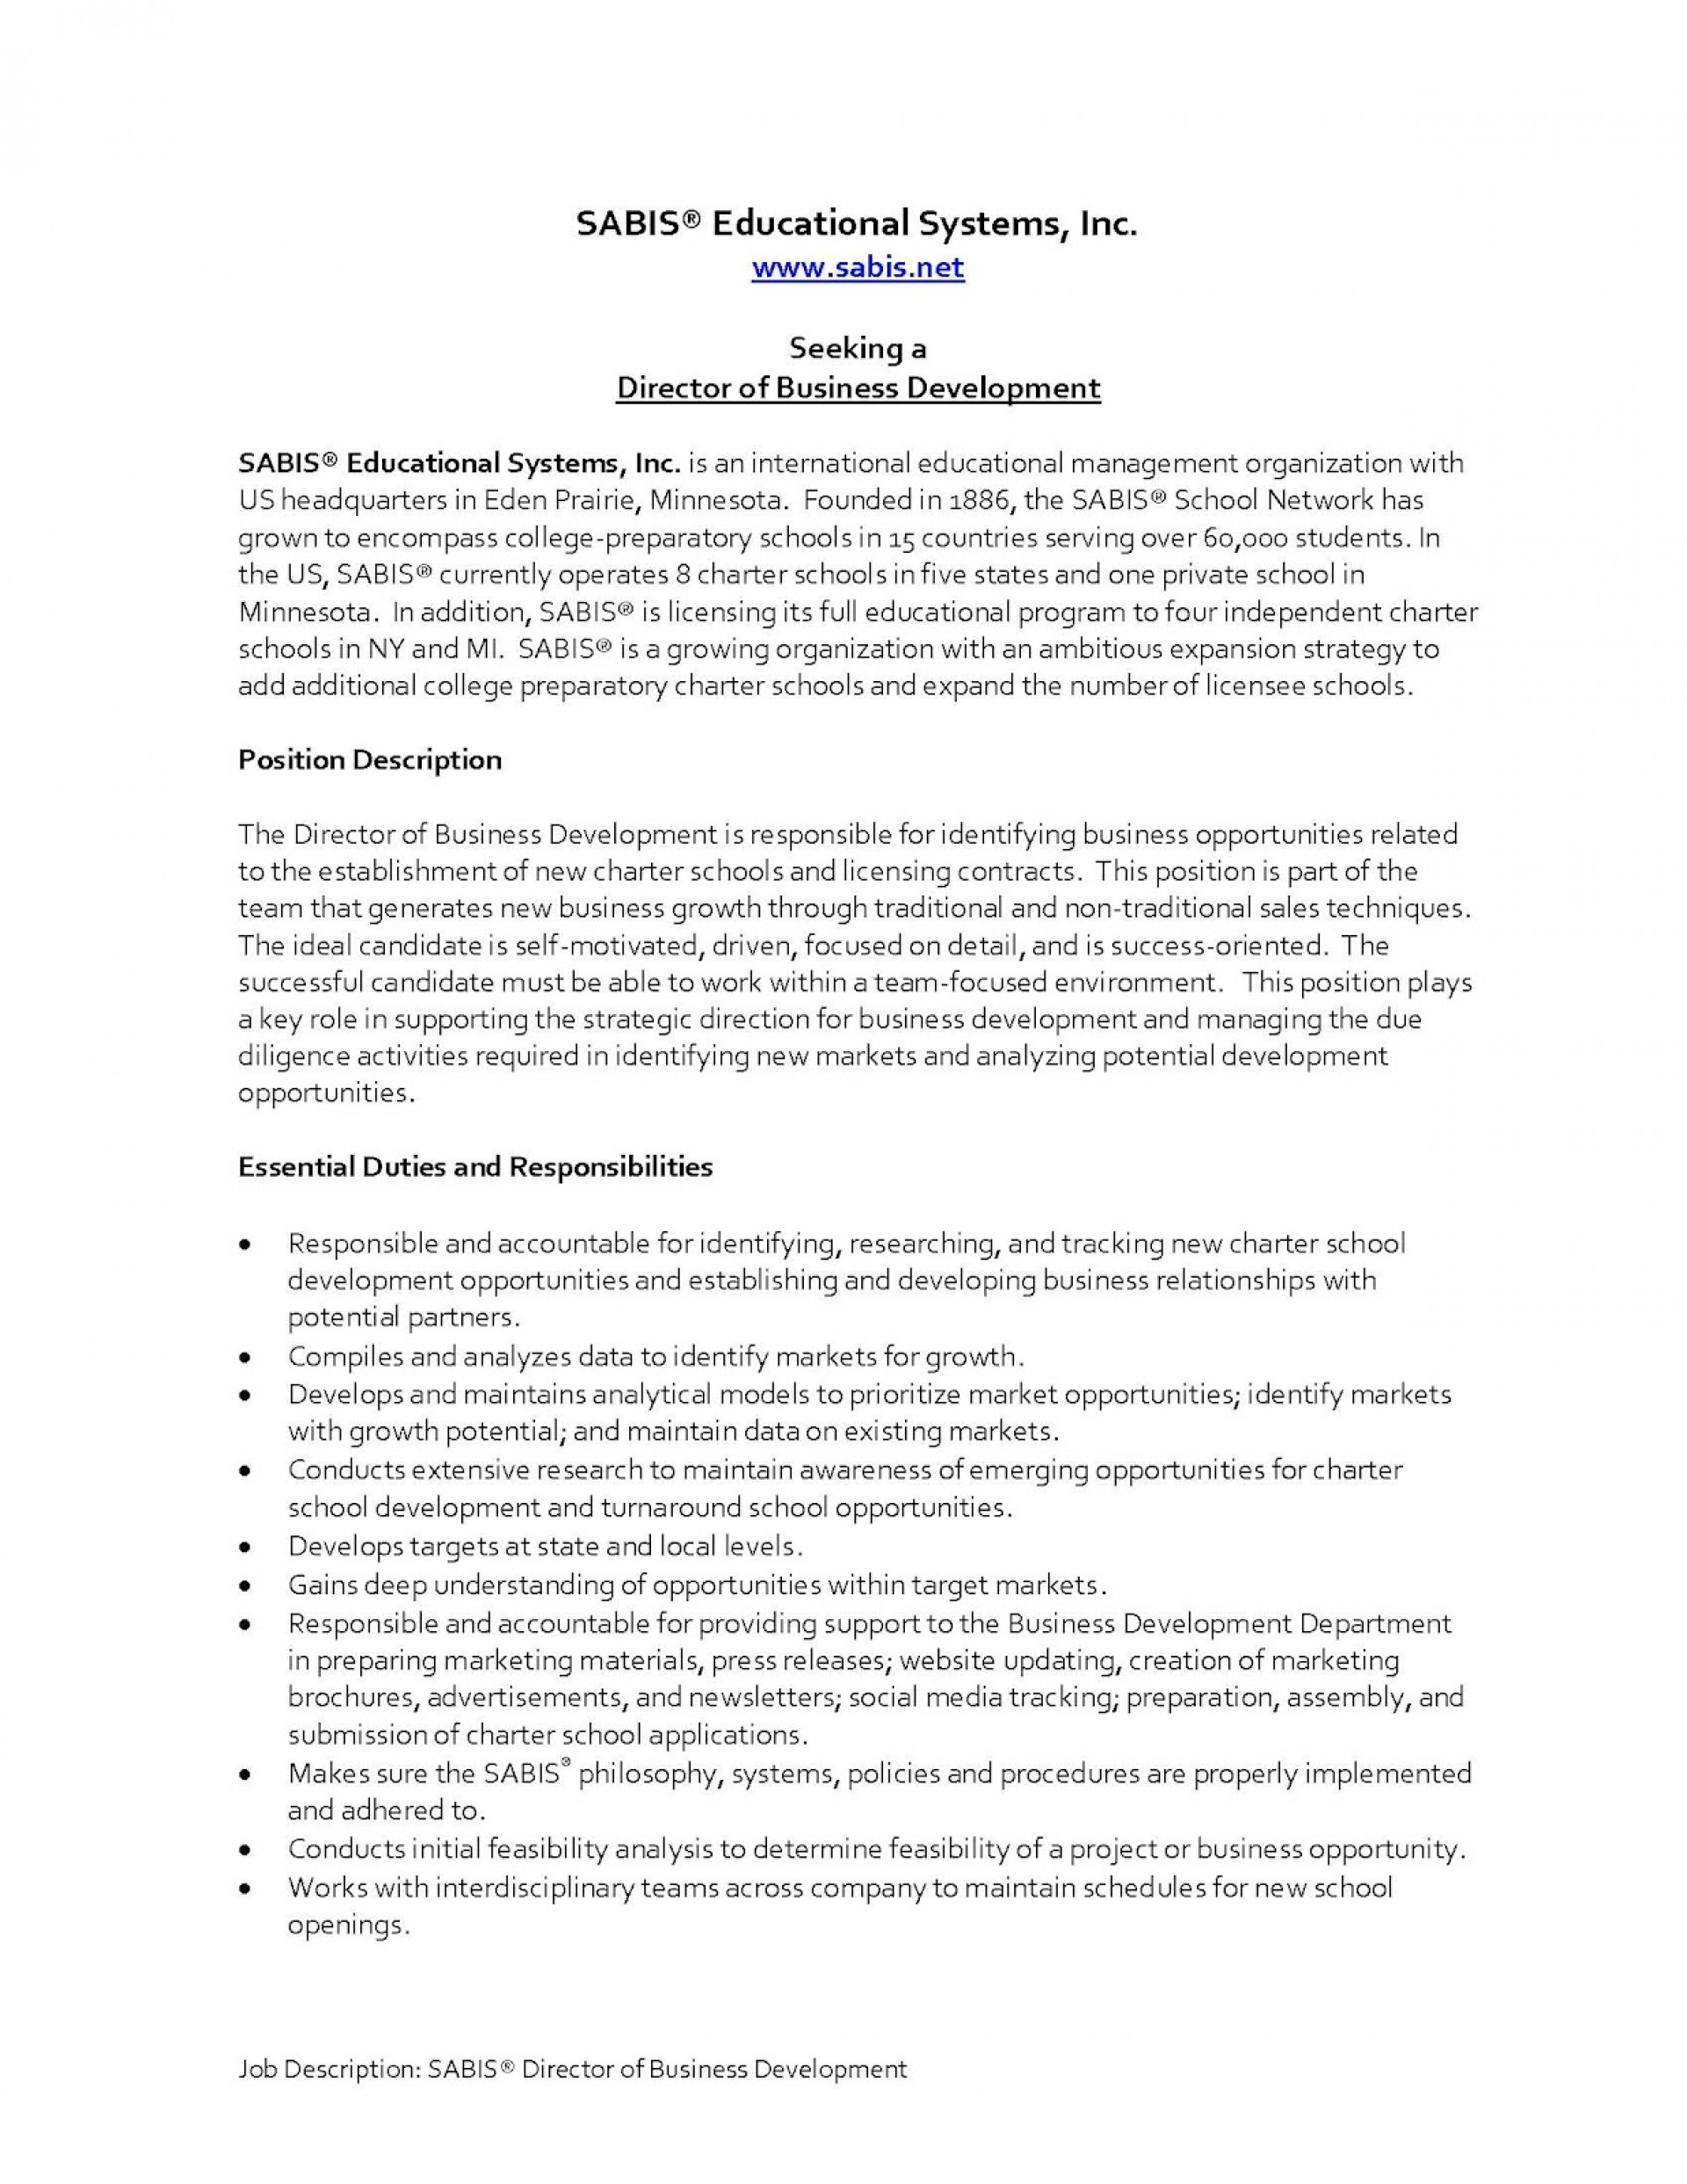 010 Essay Example Literary Criticism Director20business20development20job20description Page 1 Excellent On The Great Gatsby Ideas Conclusion Sample 1920